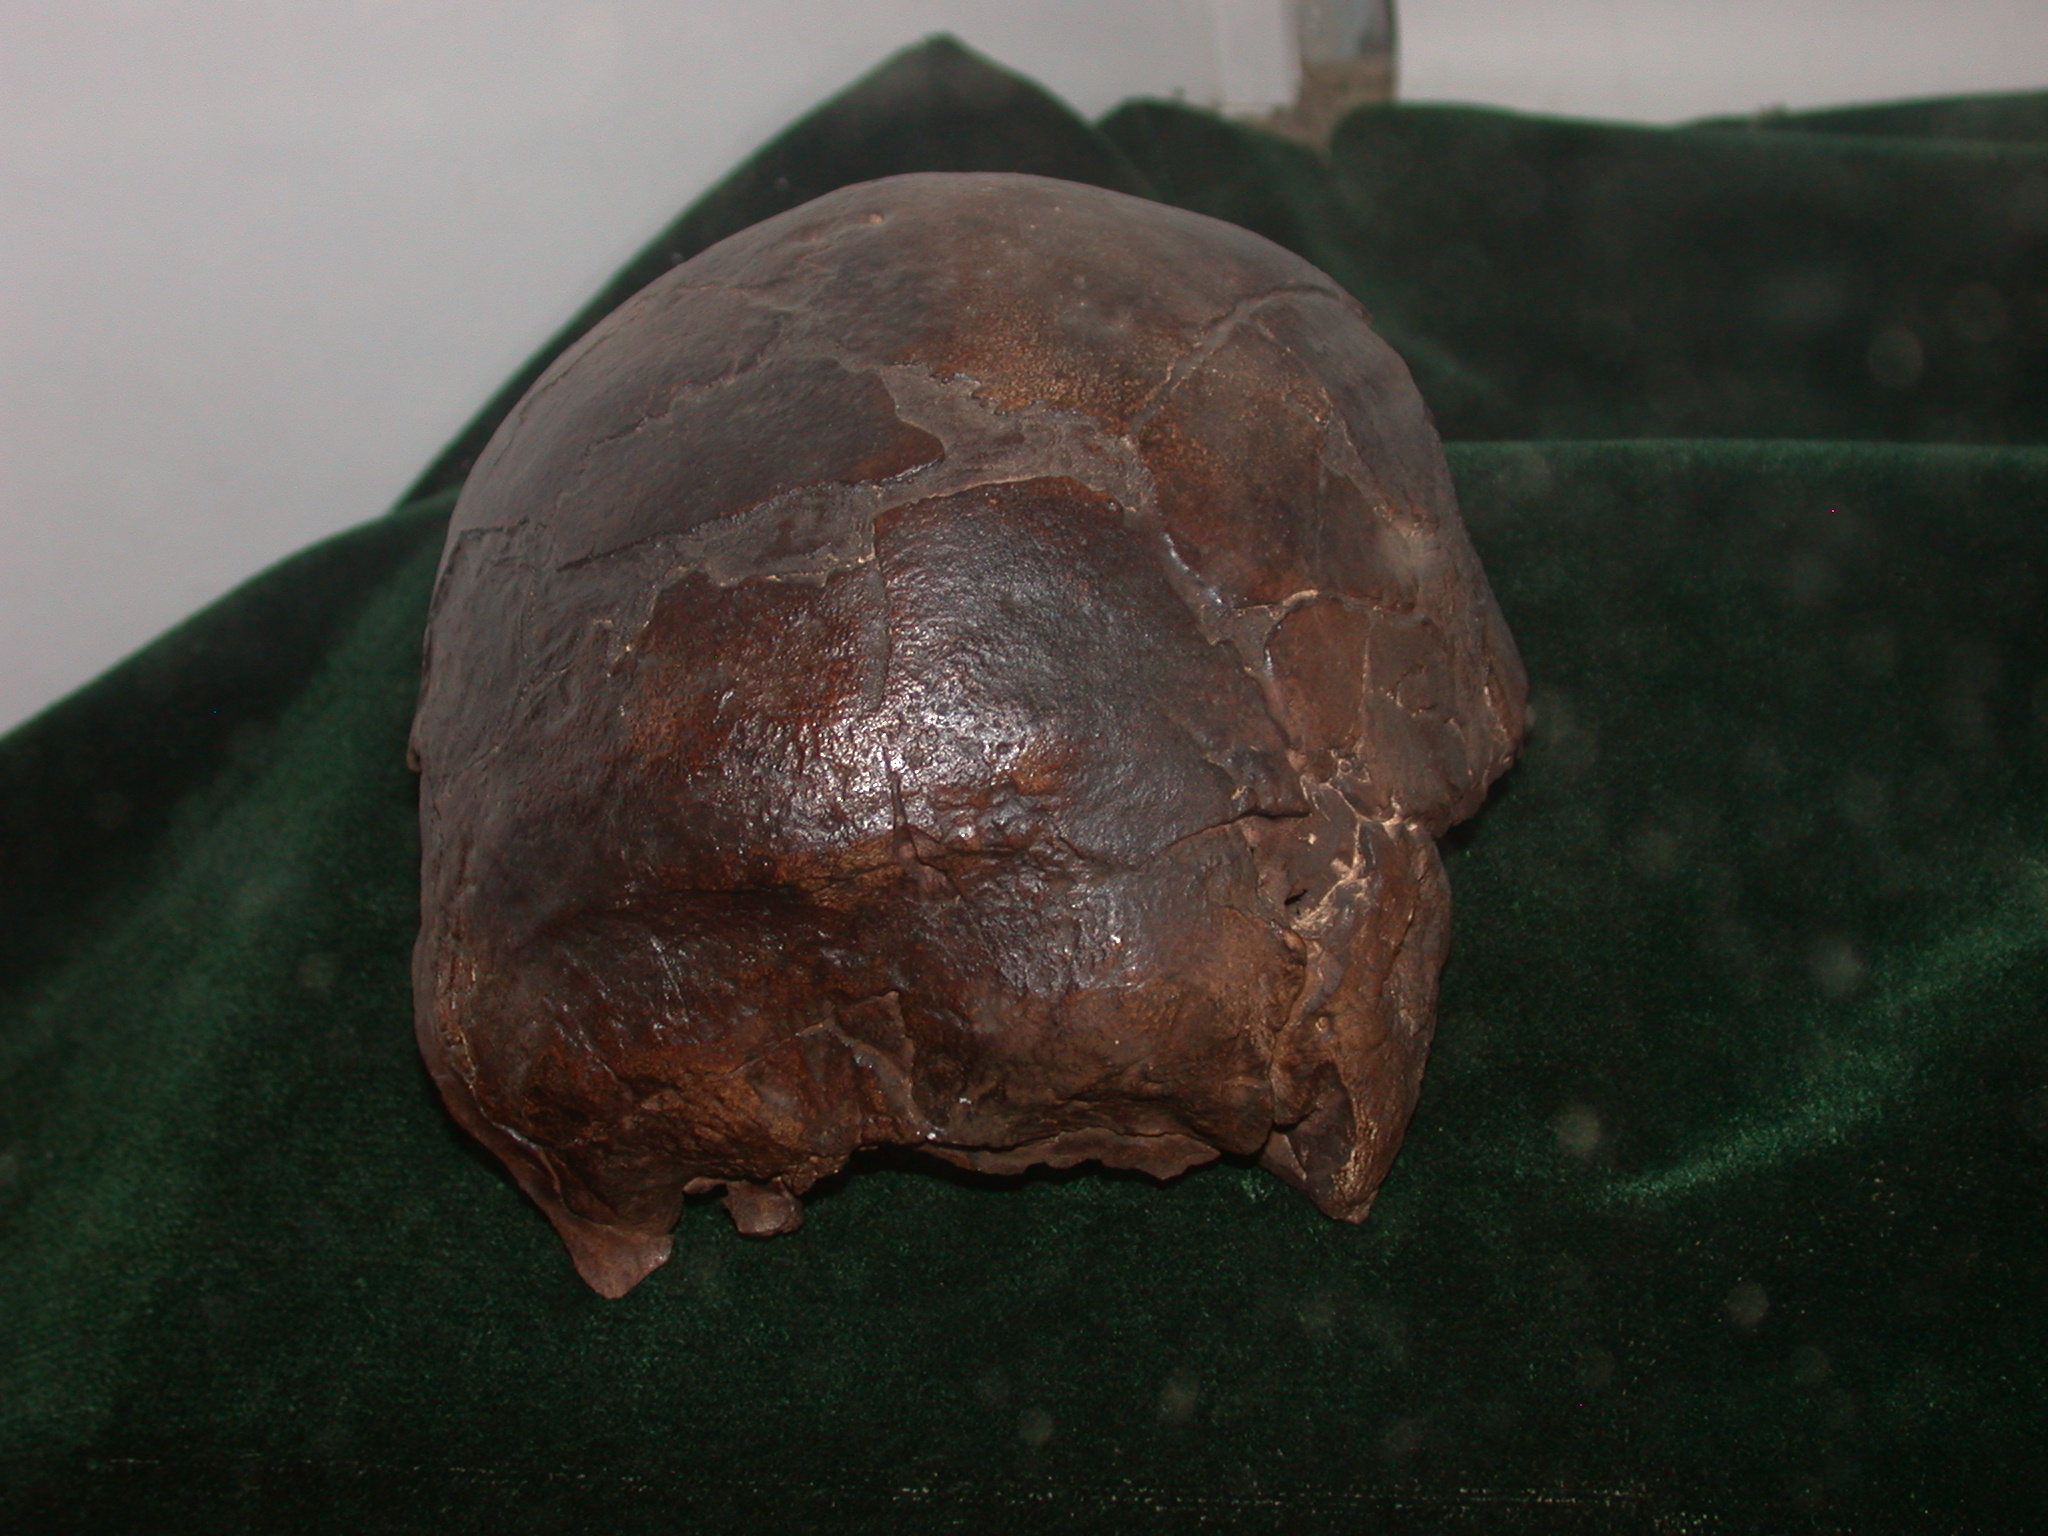 Omo I Homo Sapiens Skull Replica at National Museum, Addis Ababa, Ethiopia